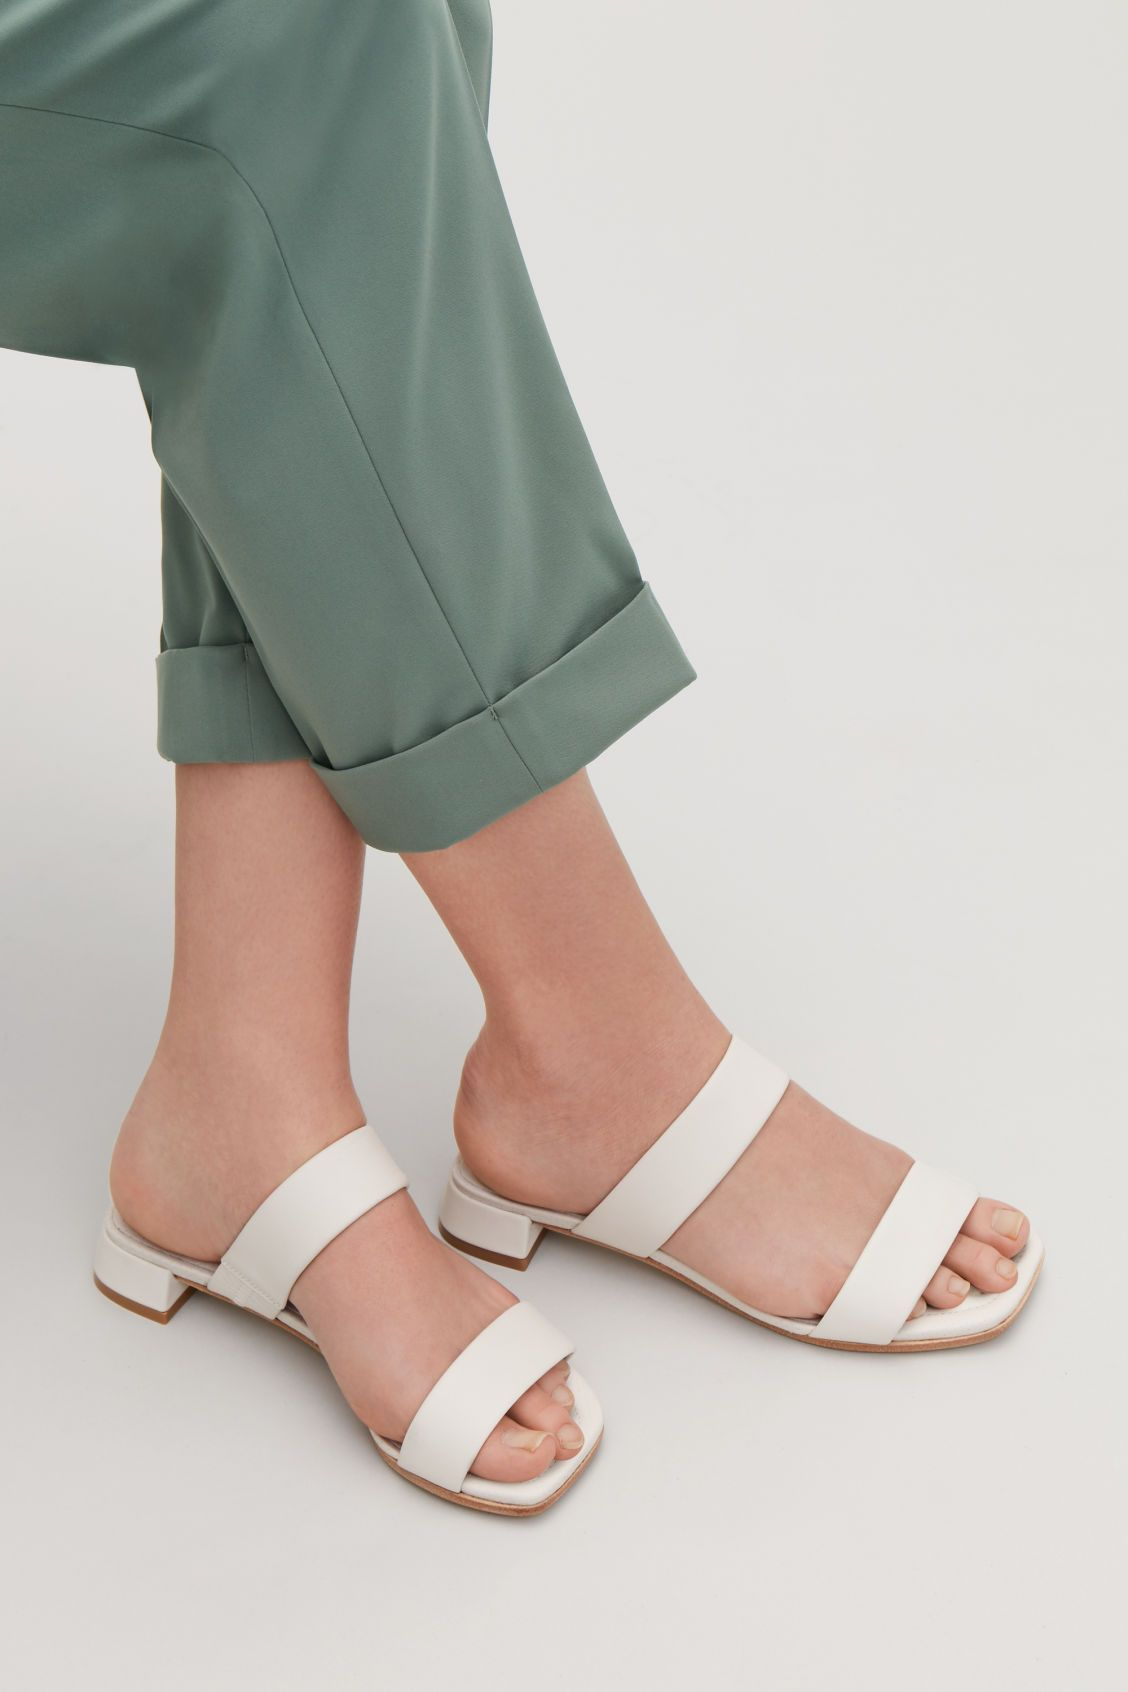 f76b62da5f3b2 Detailed image of Cos two-strap leather sandals in neutral